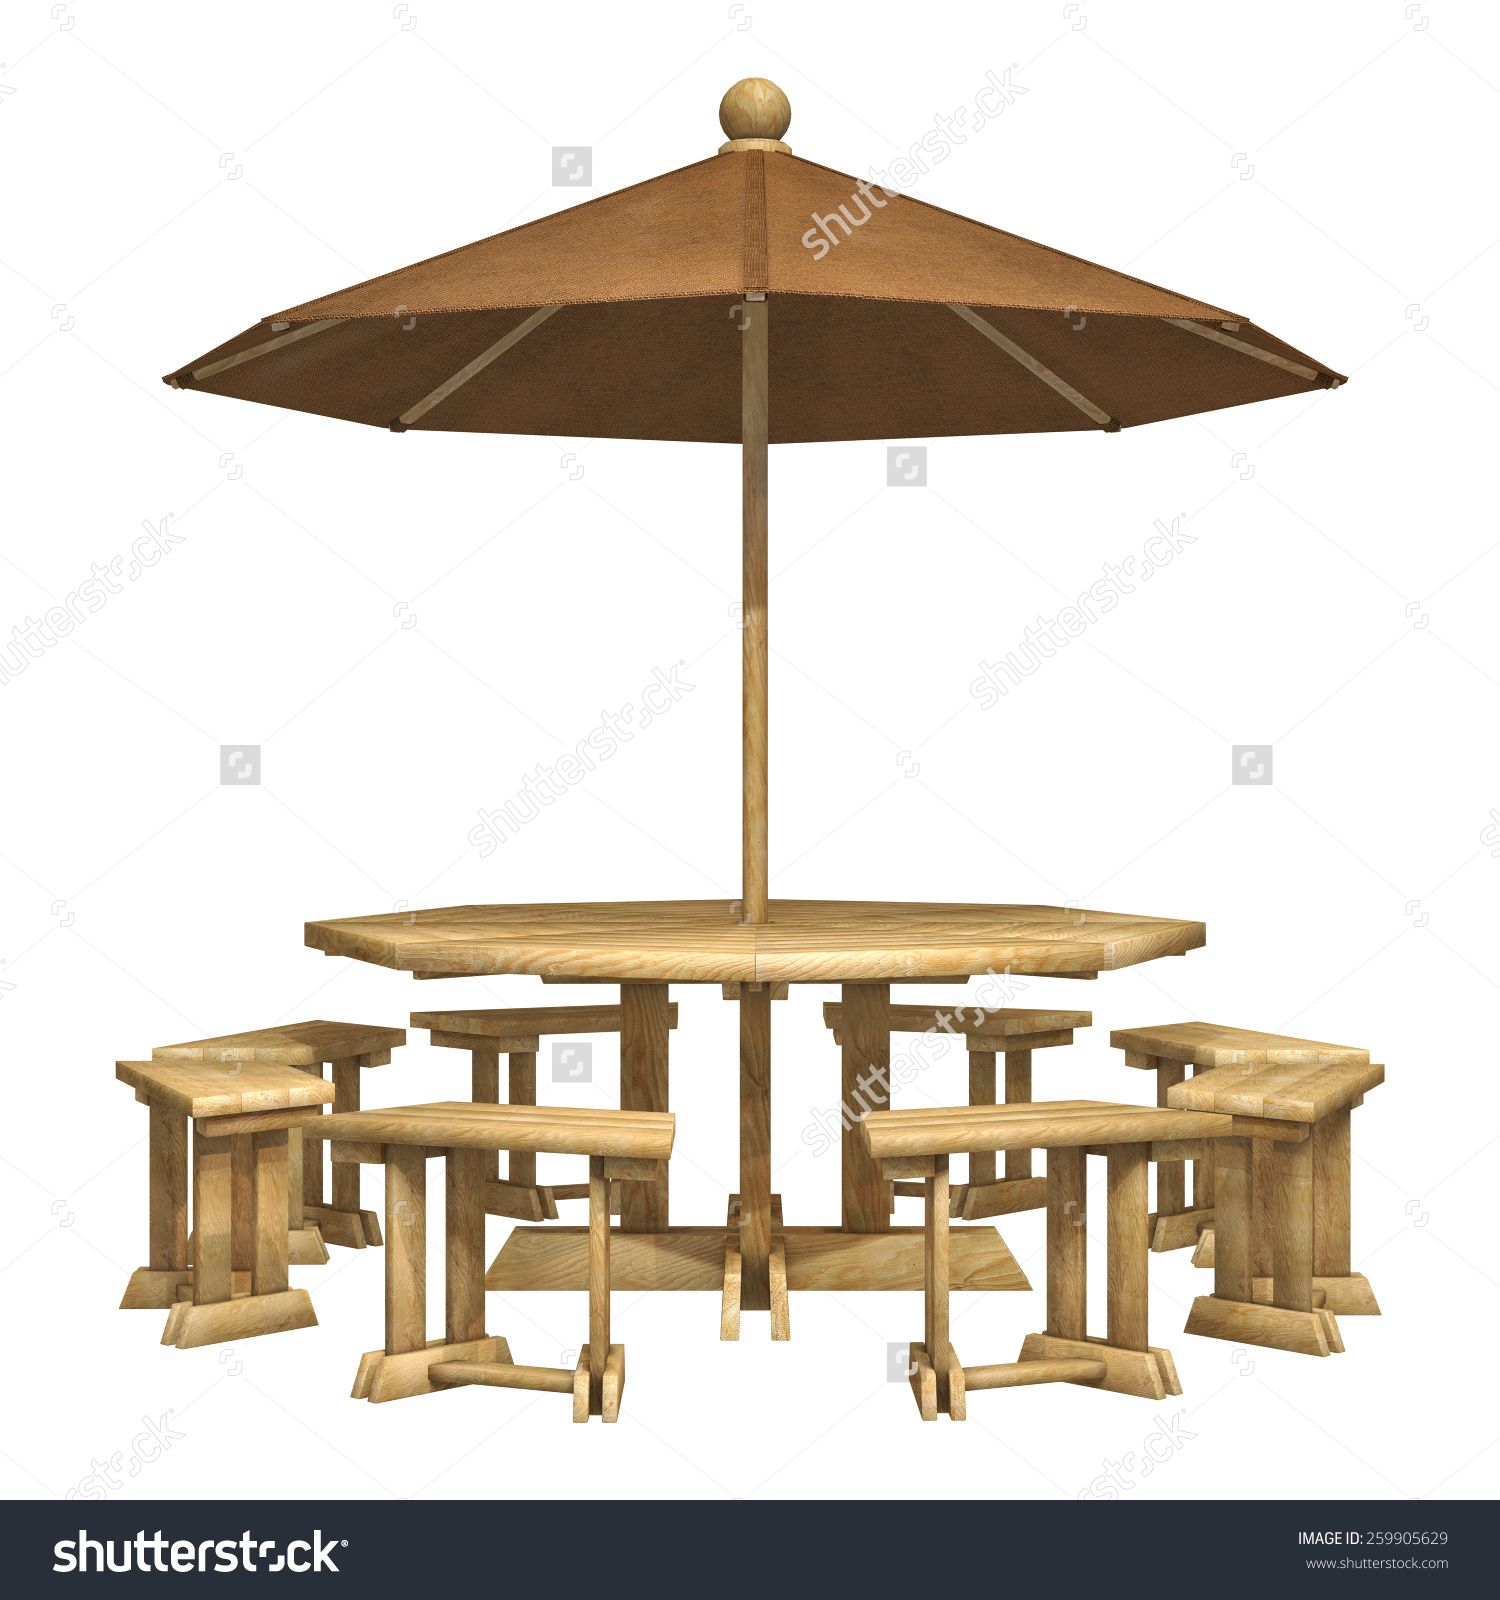 Outdoor Dining Table Sets Wrought Iron Garden Furniture Digital Render Of Wooden All Weather Patio Chairs And Umbrella Set Stock Photo Isolated On White Backgro